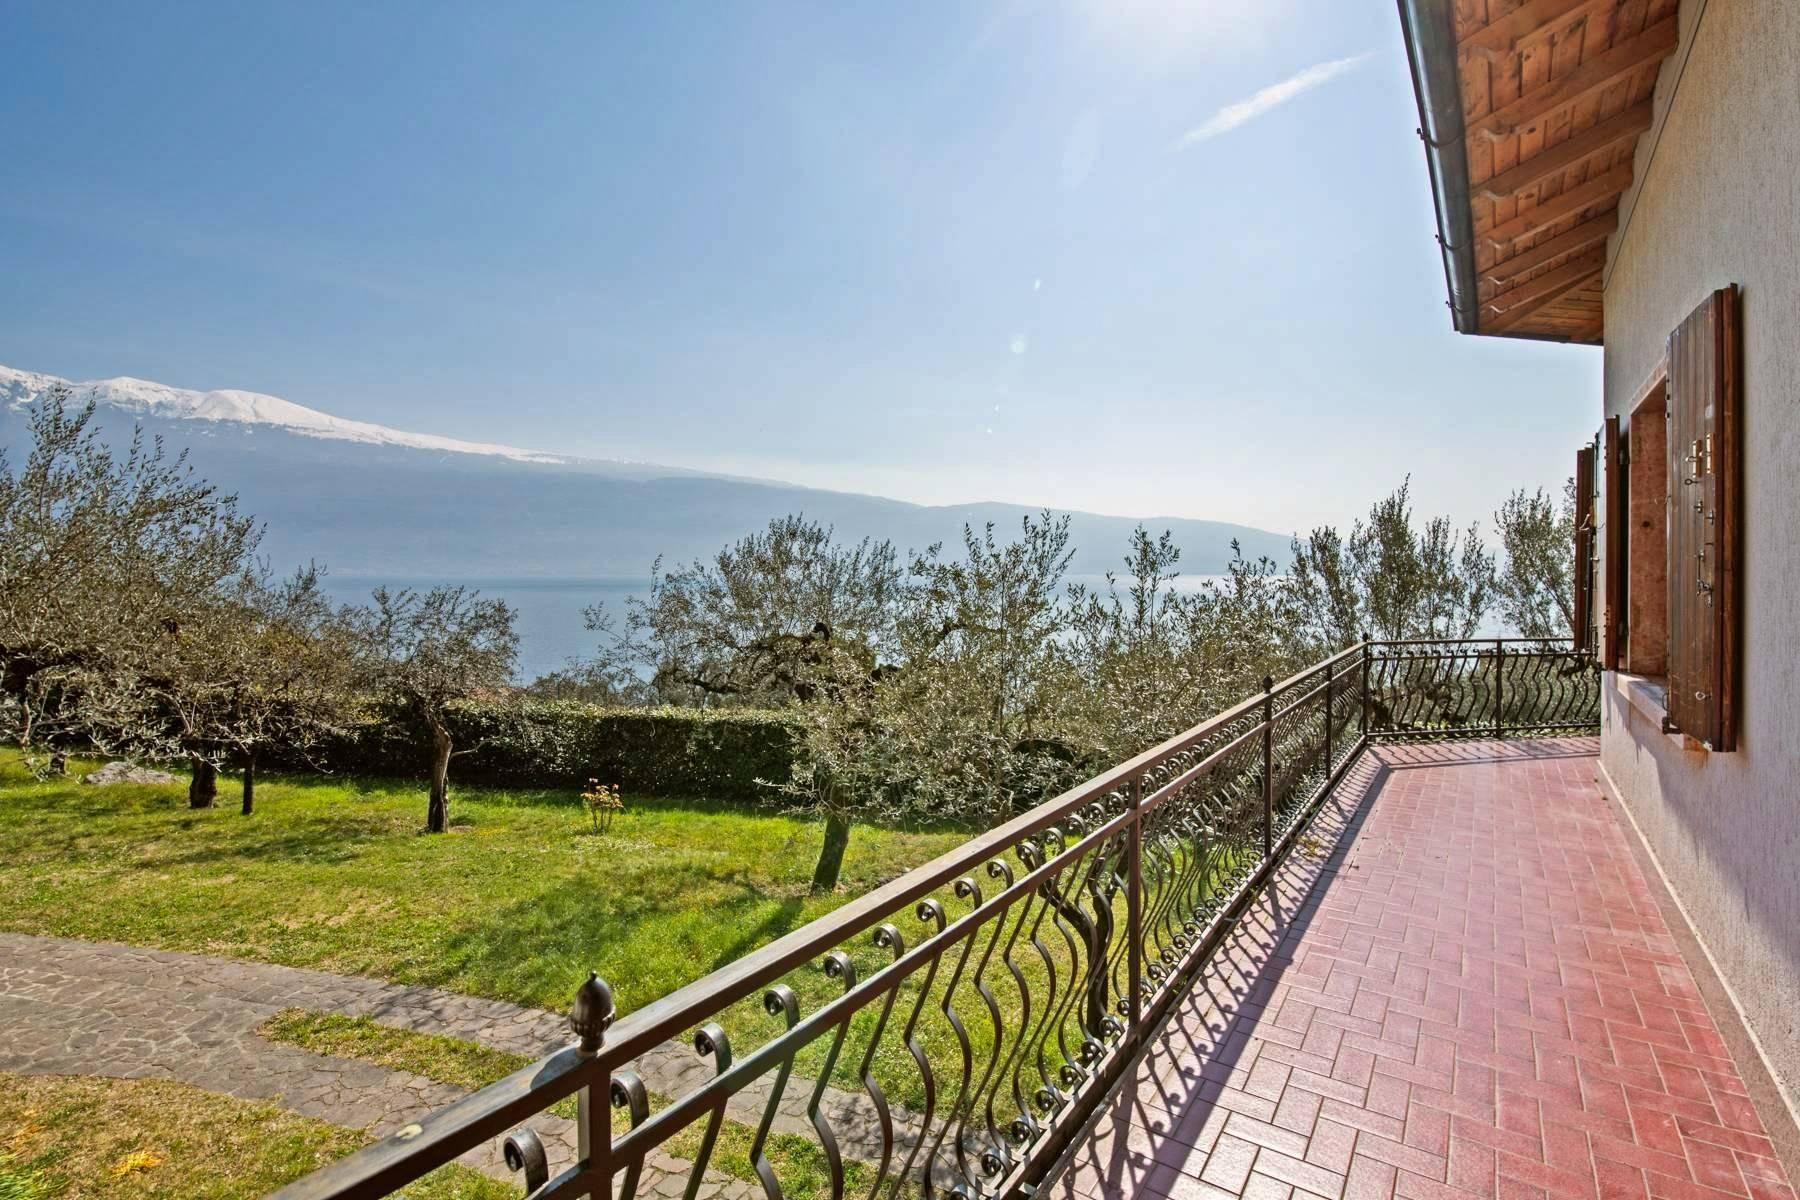 Villa with lake view in Gargnano surrounded by olive trees - 23